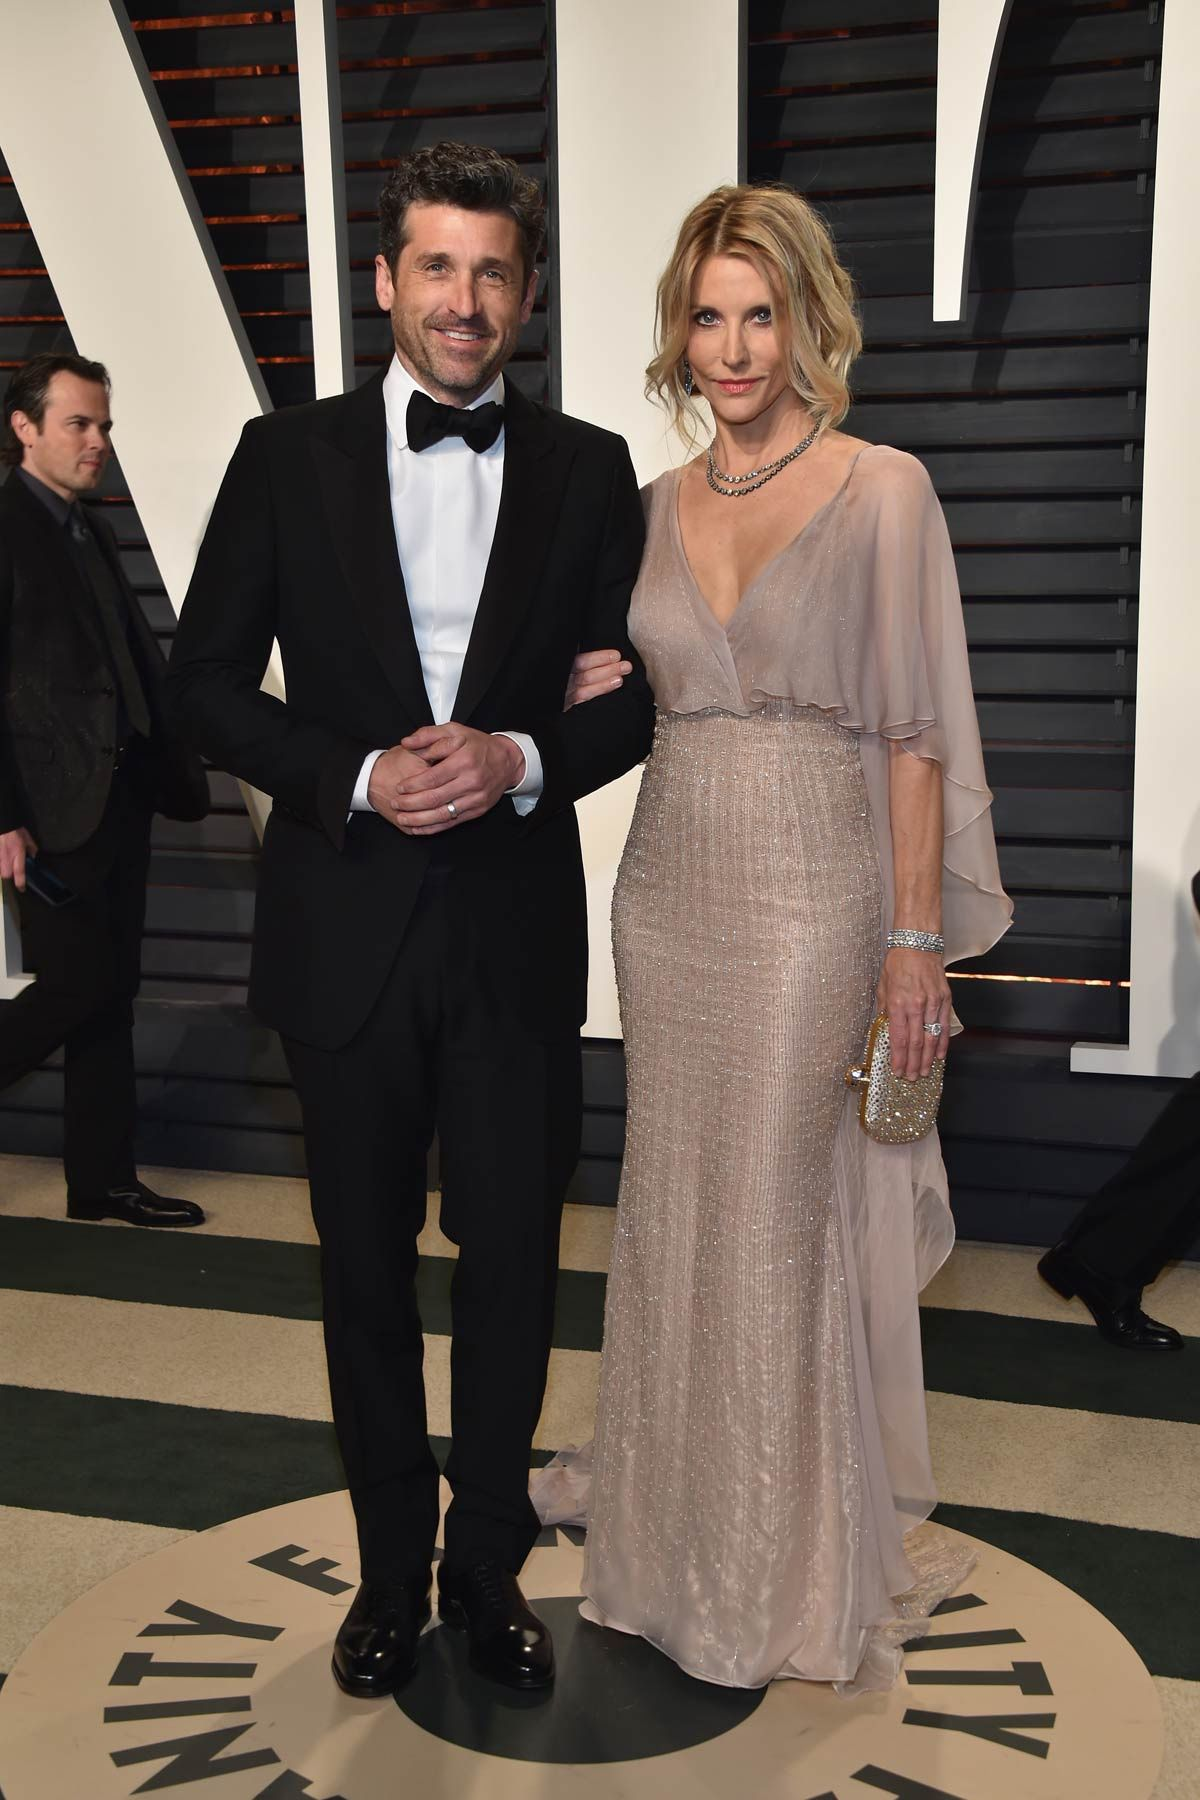 Patrick Dempsey And Wife Jillian Fink Couples 2 In 2019